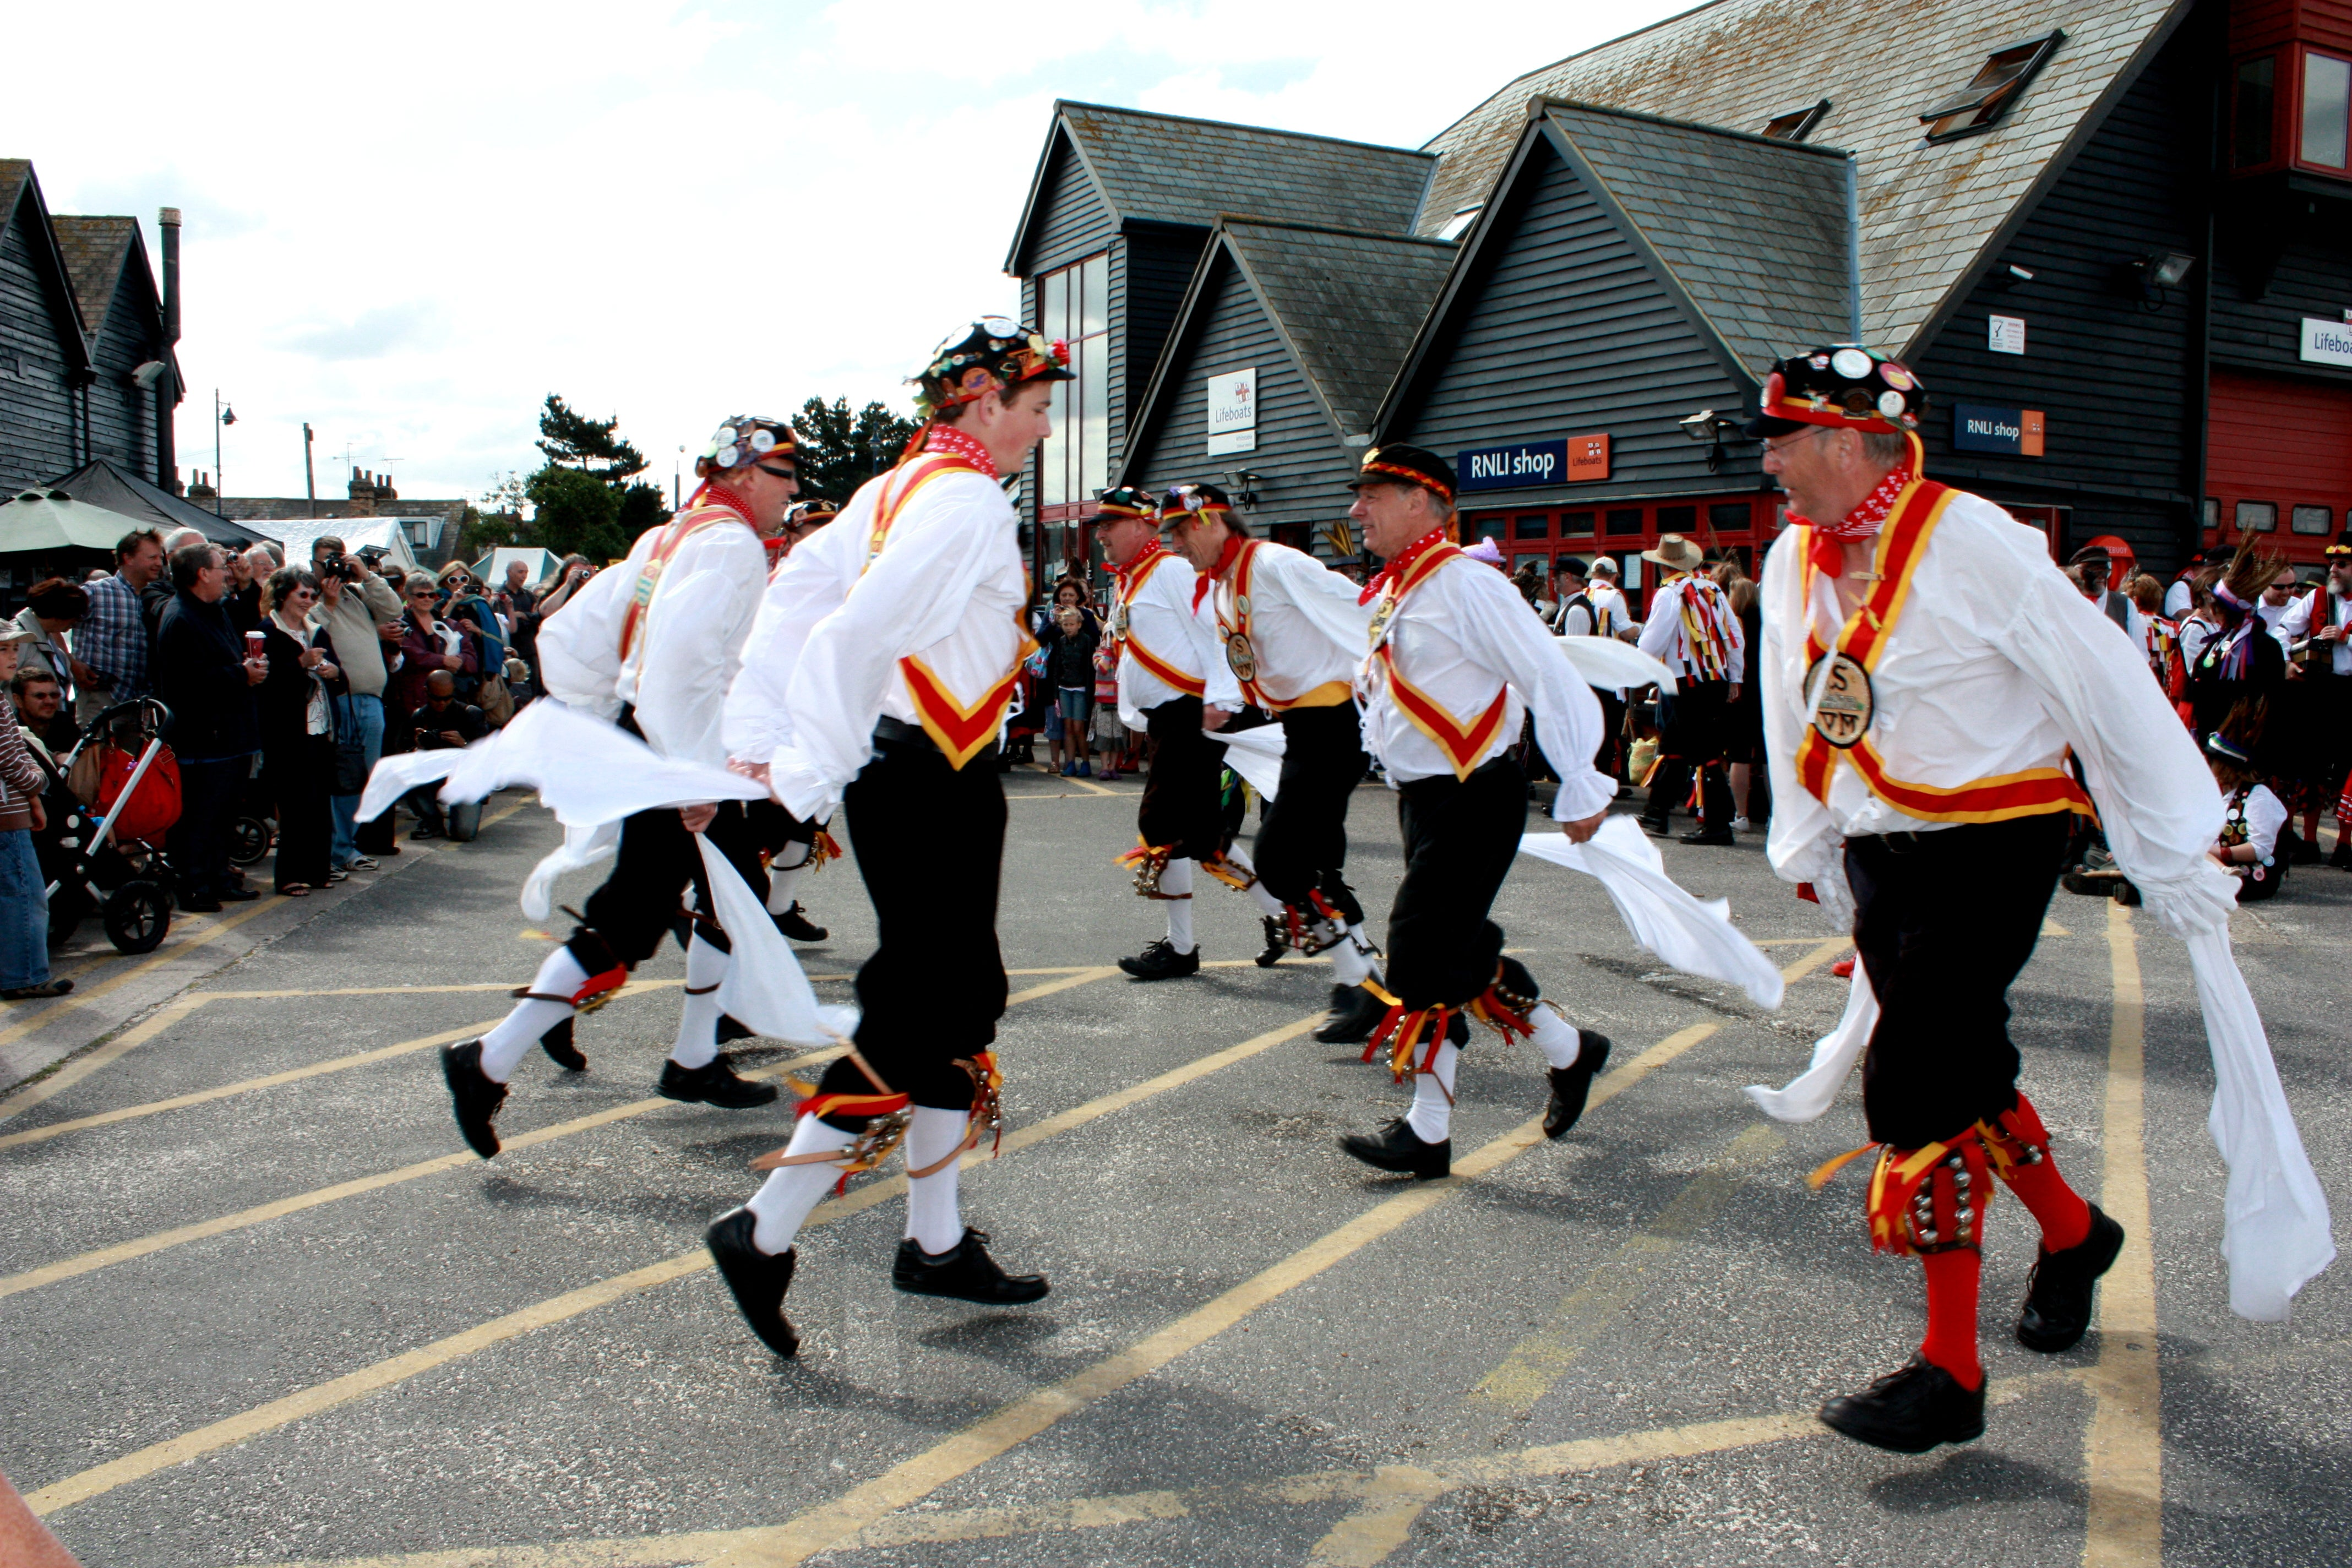 photos of whitstable oyster festival   images